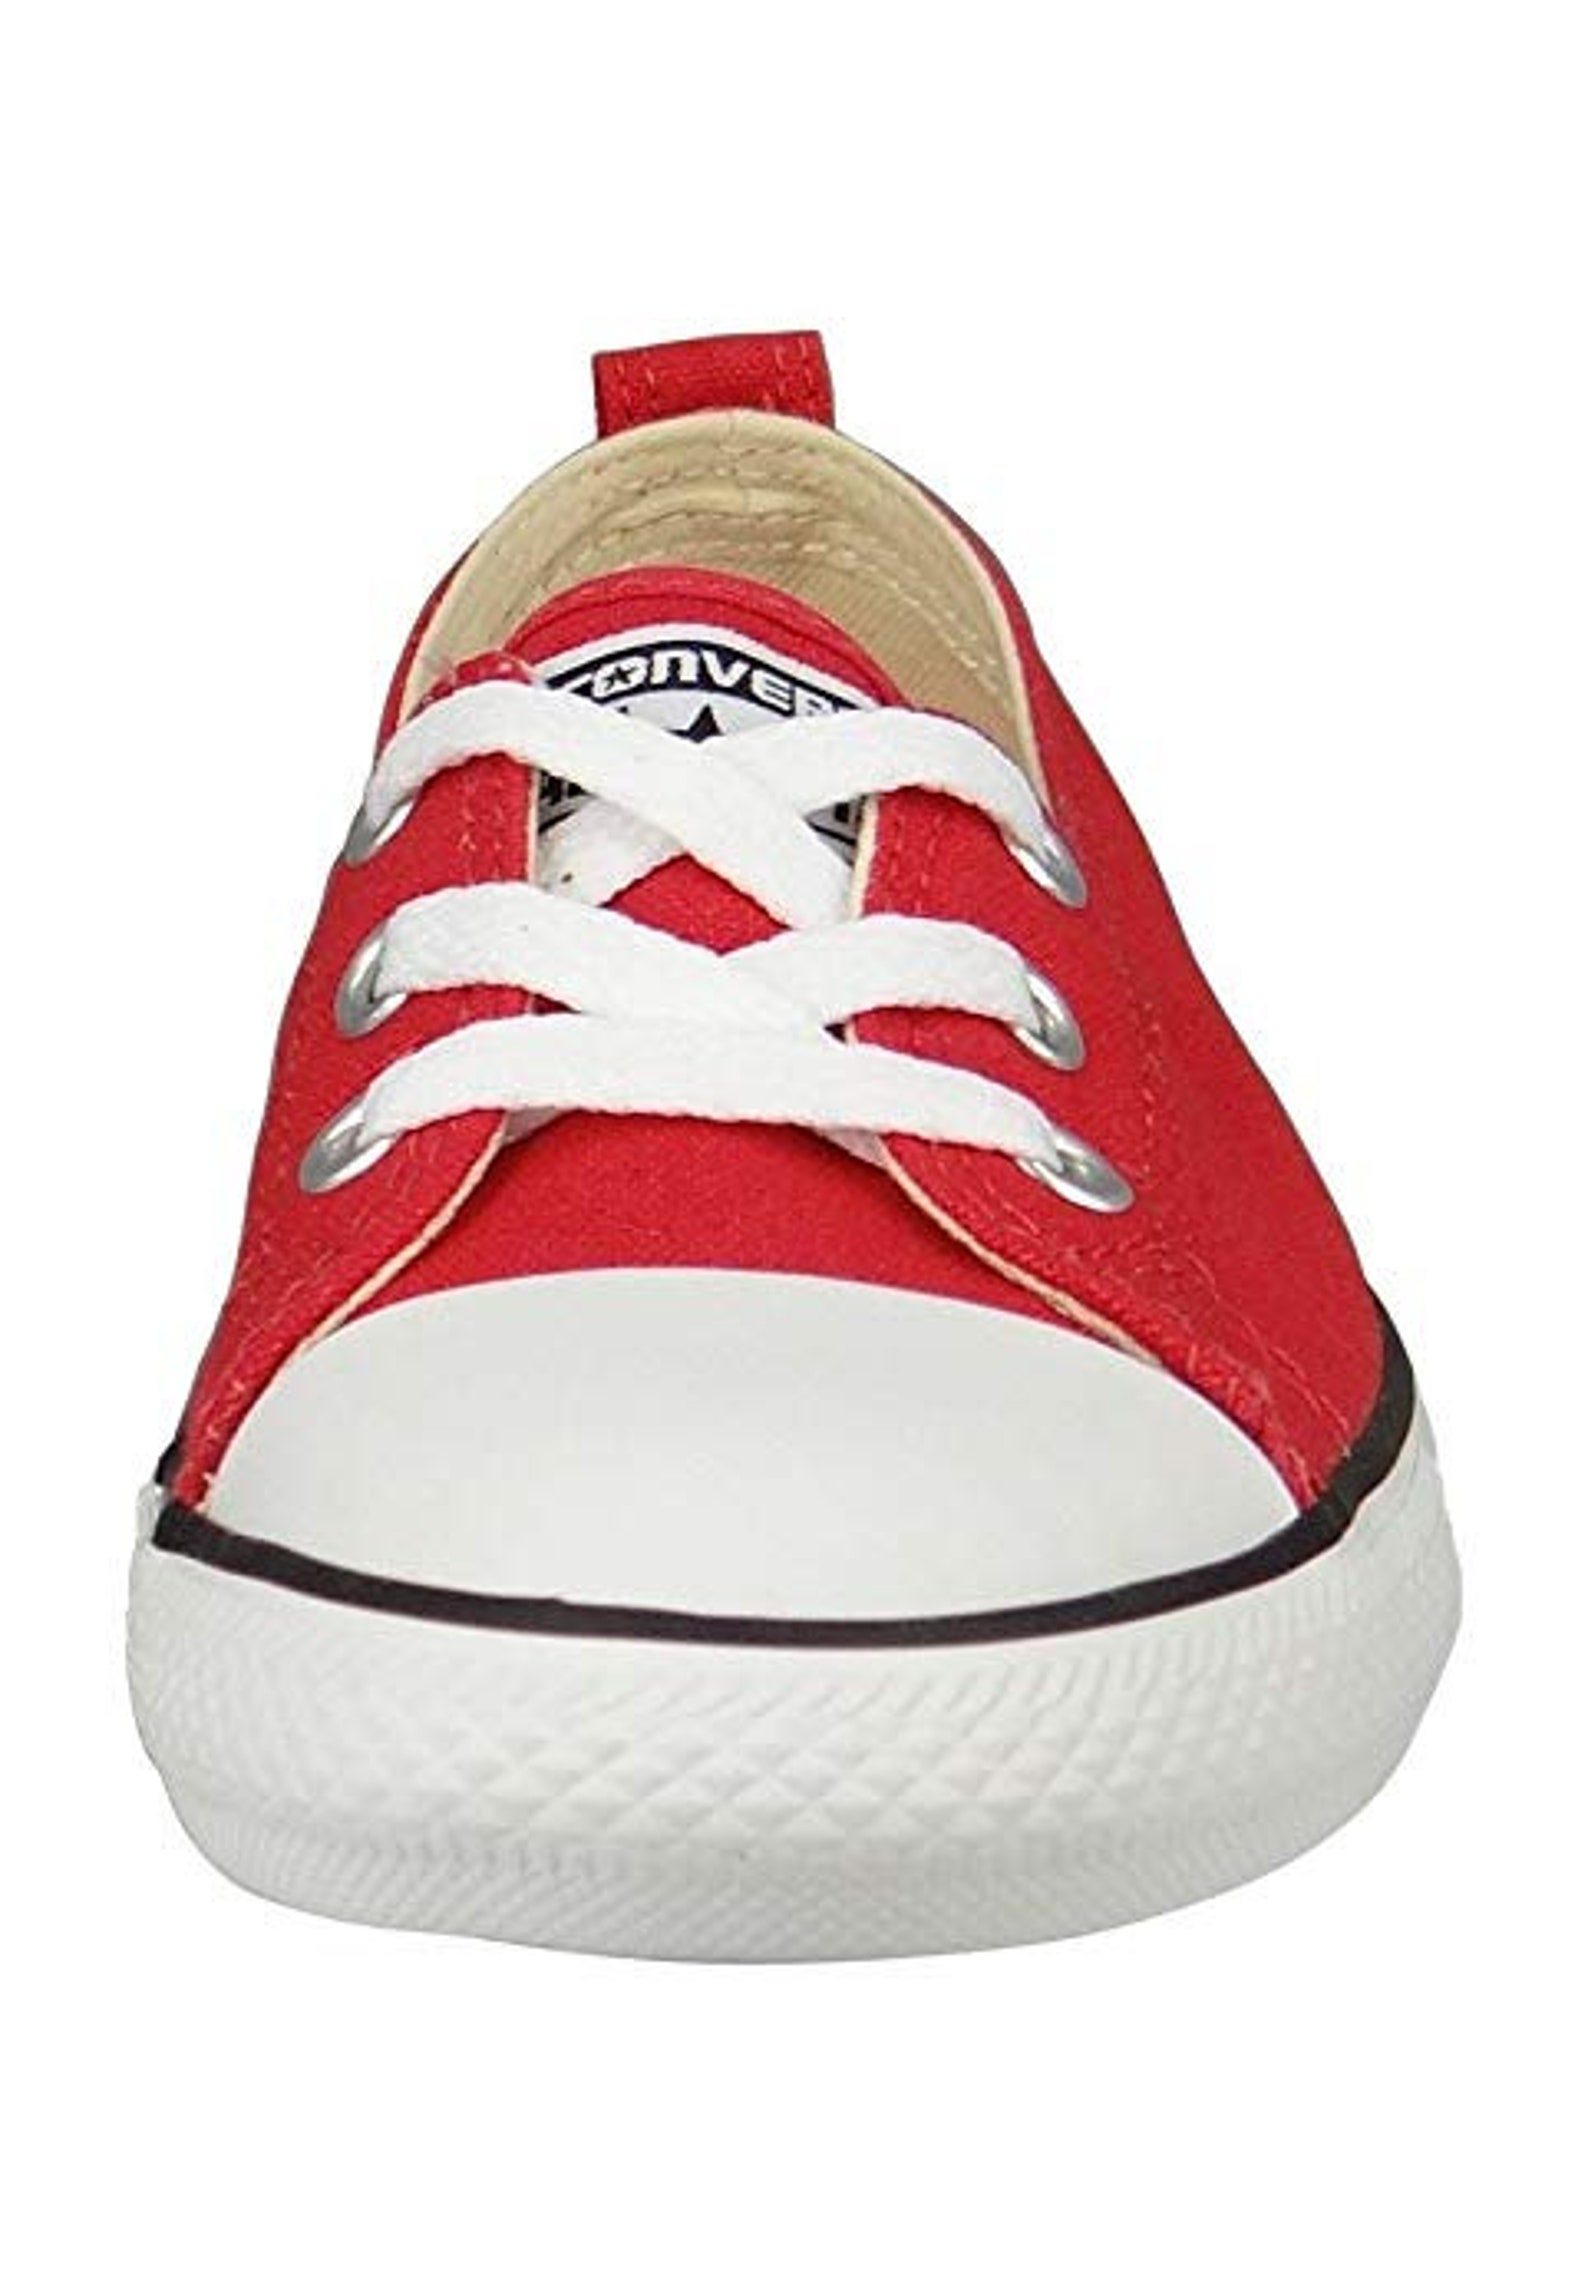 red converse slip on low top brake light ballet flat wedding reception lace w/ swarovski crystal chuck taylor all star bridal sn